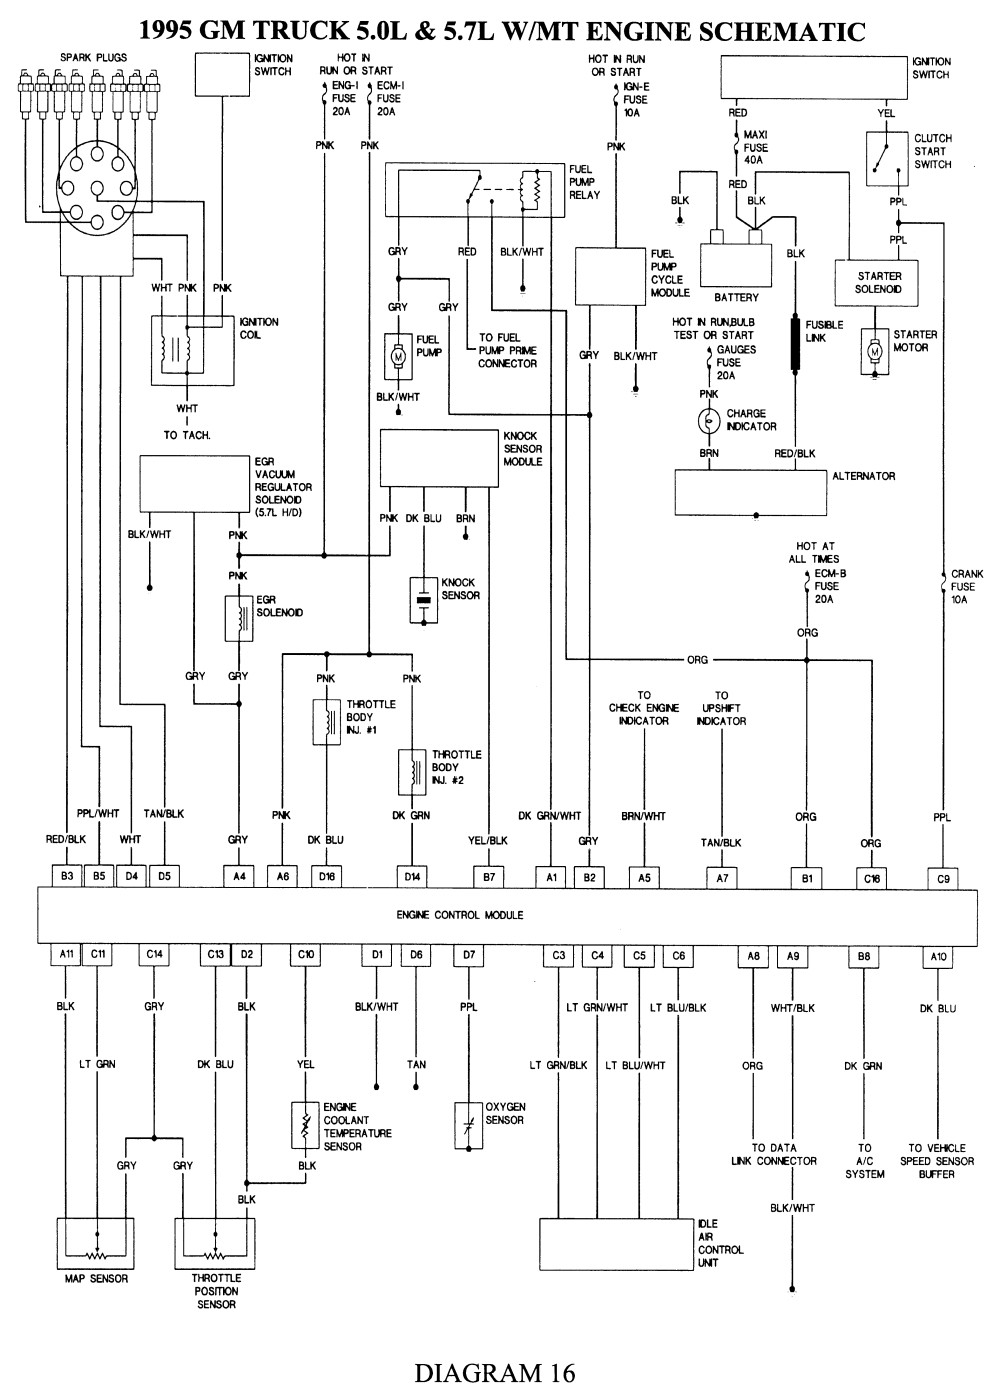 1990 chevy 1500 fuel pump wiring diagram unique